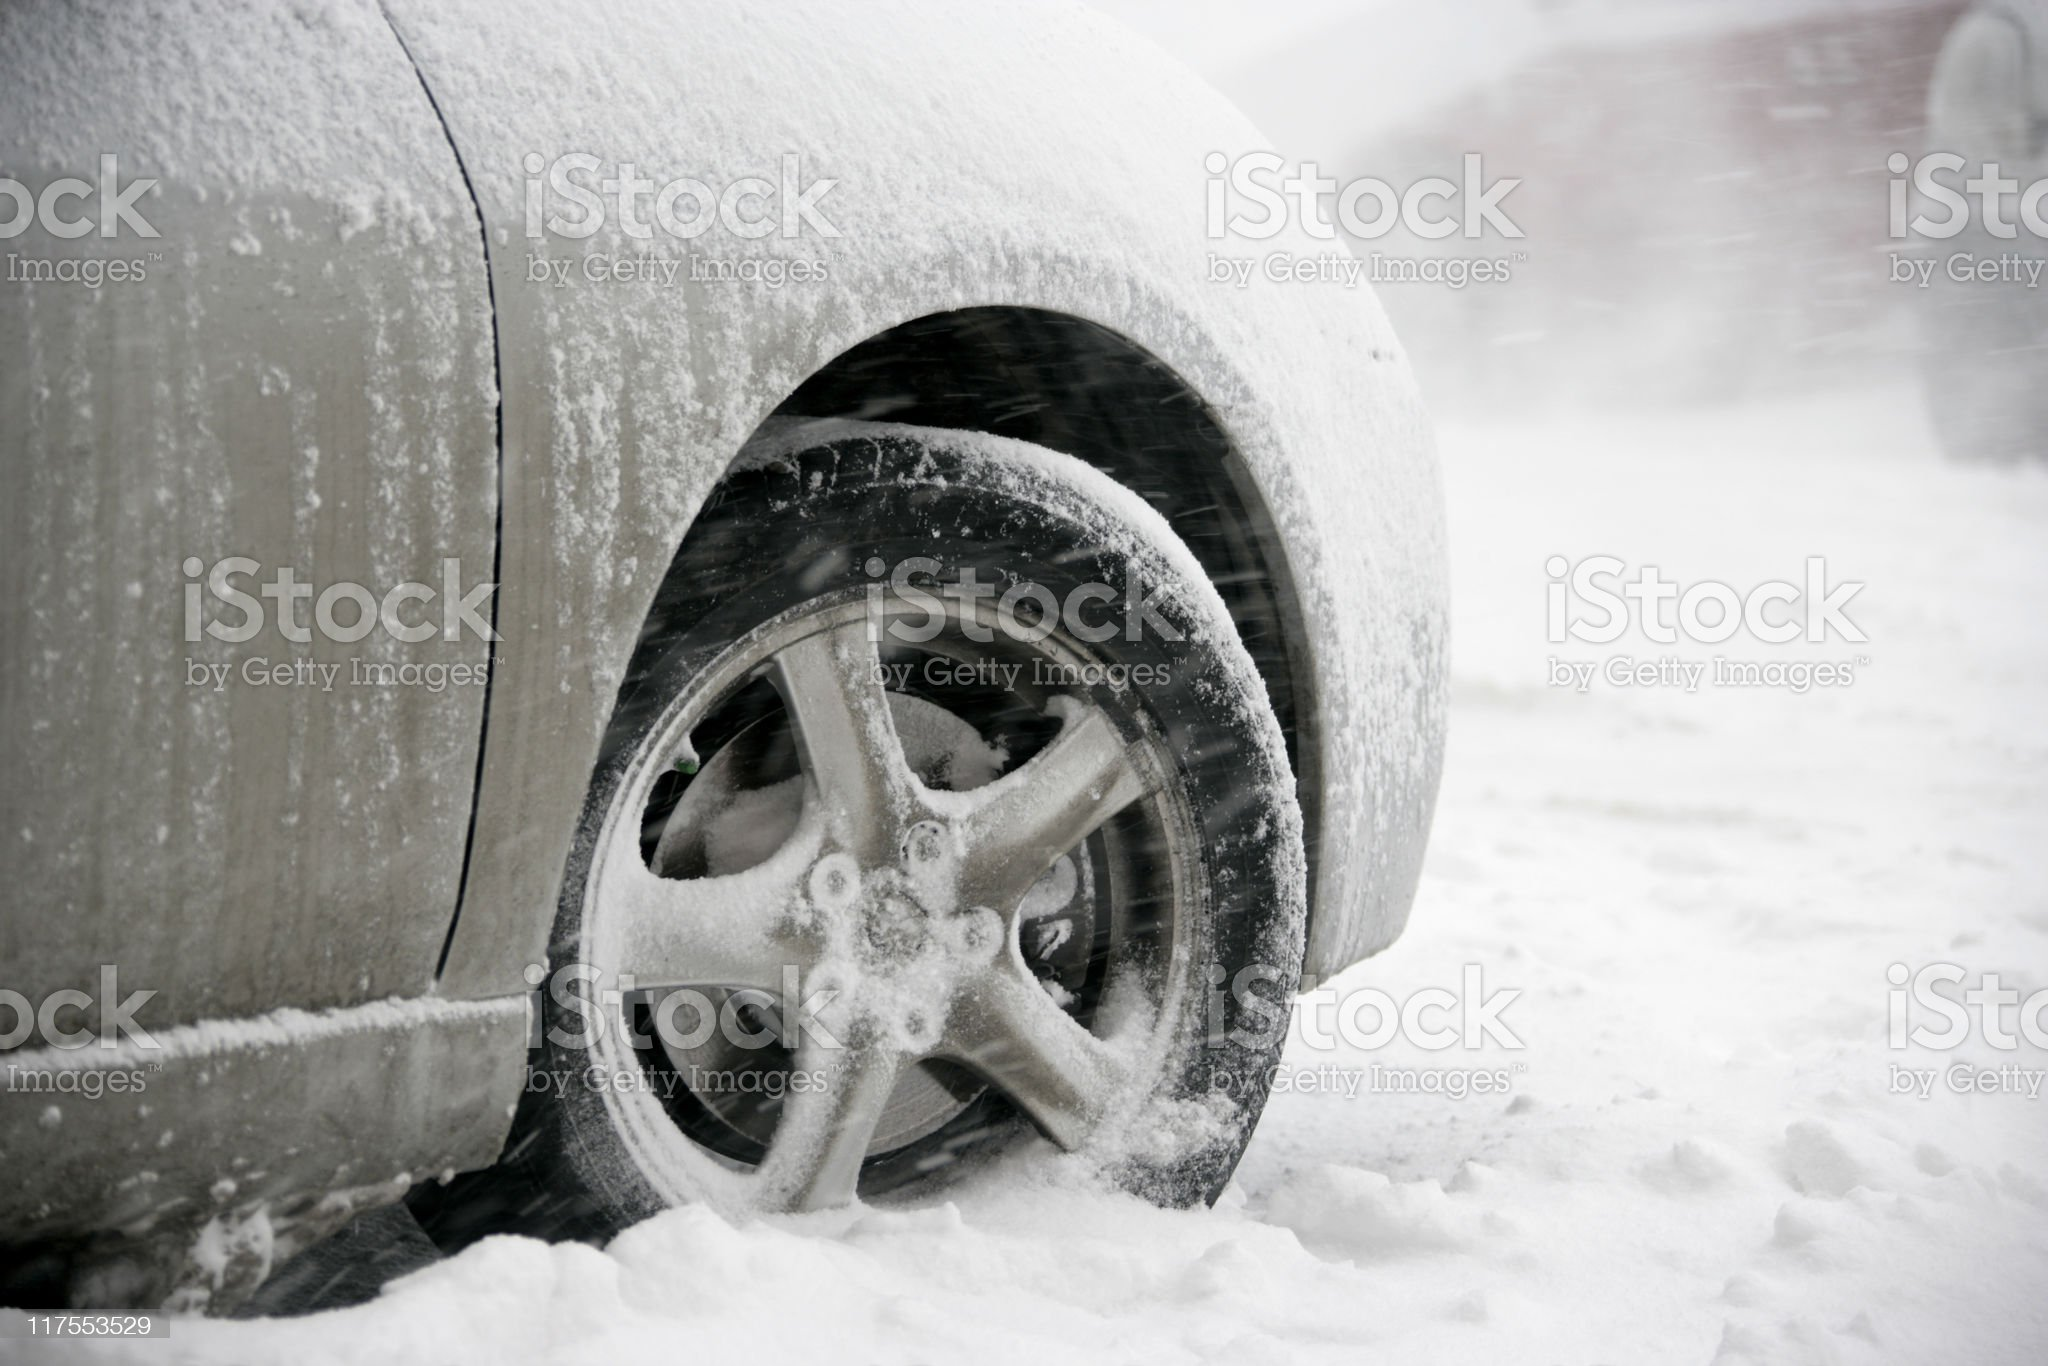 stuck in snow royalty-free stock photo